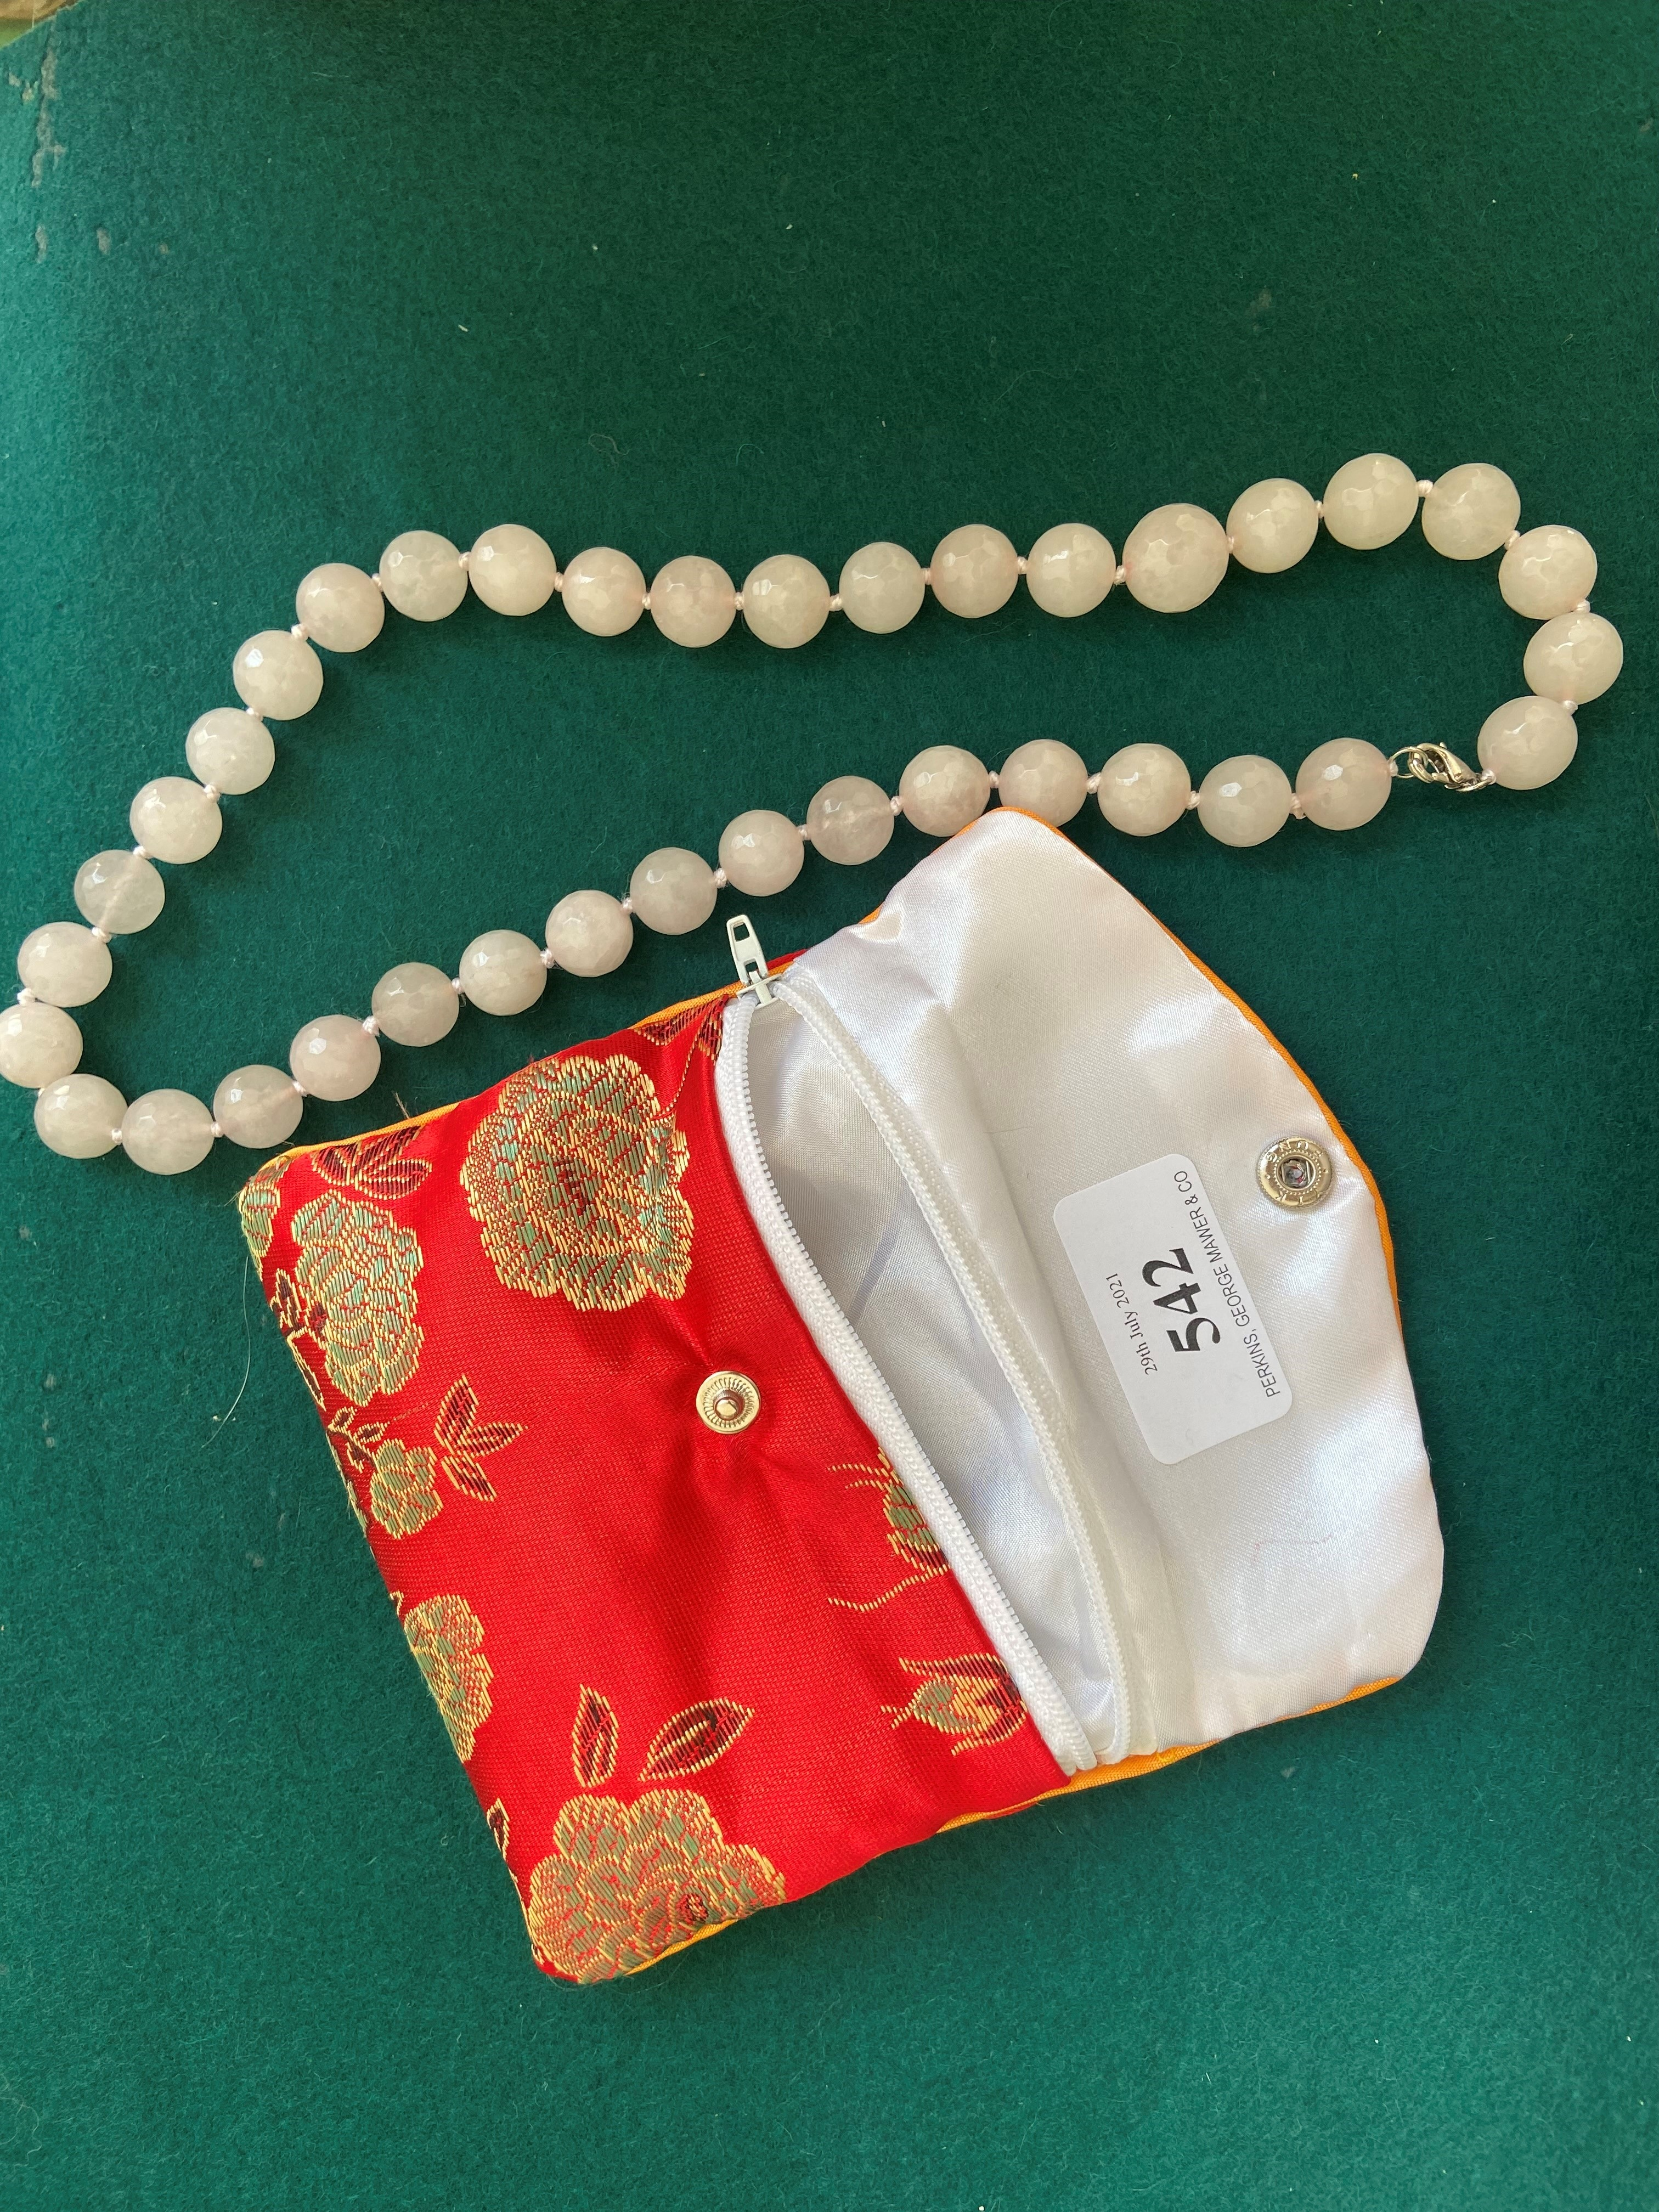 Silk purse containing single strand voilet bead necklace